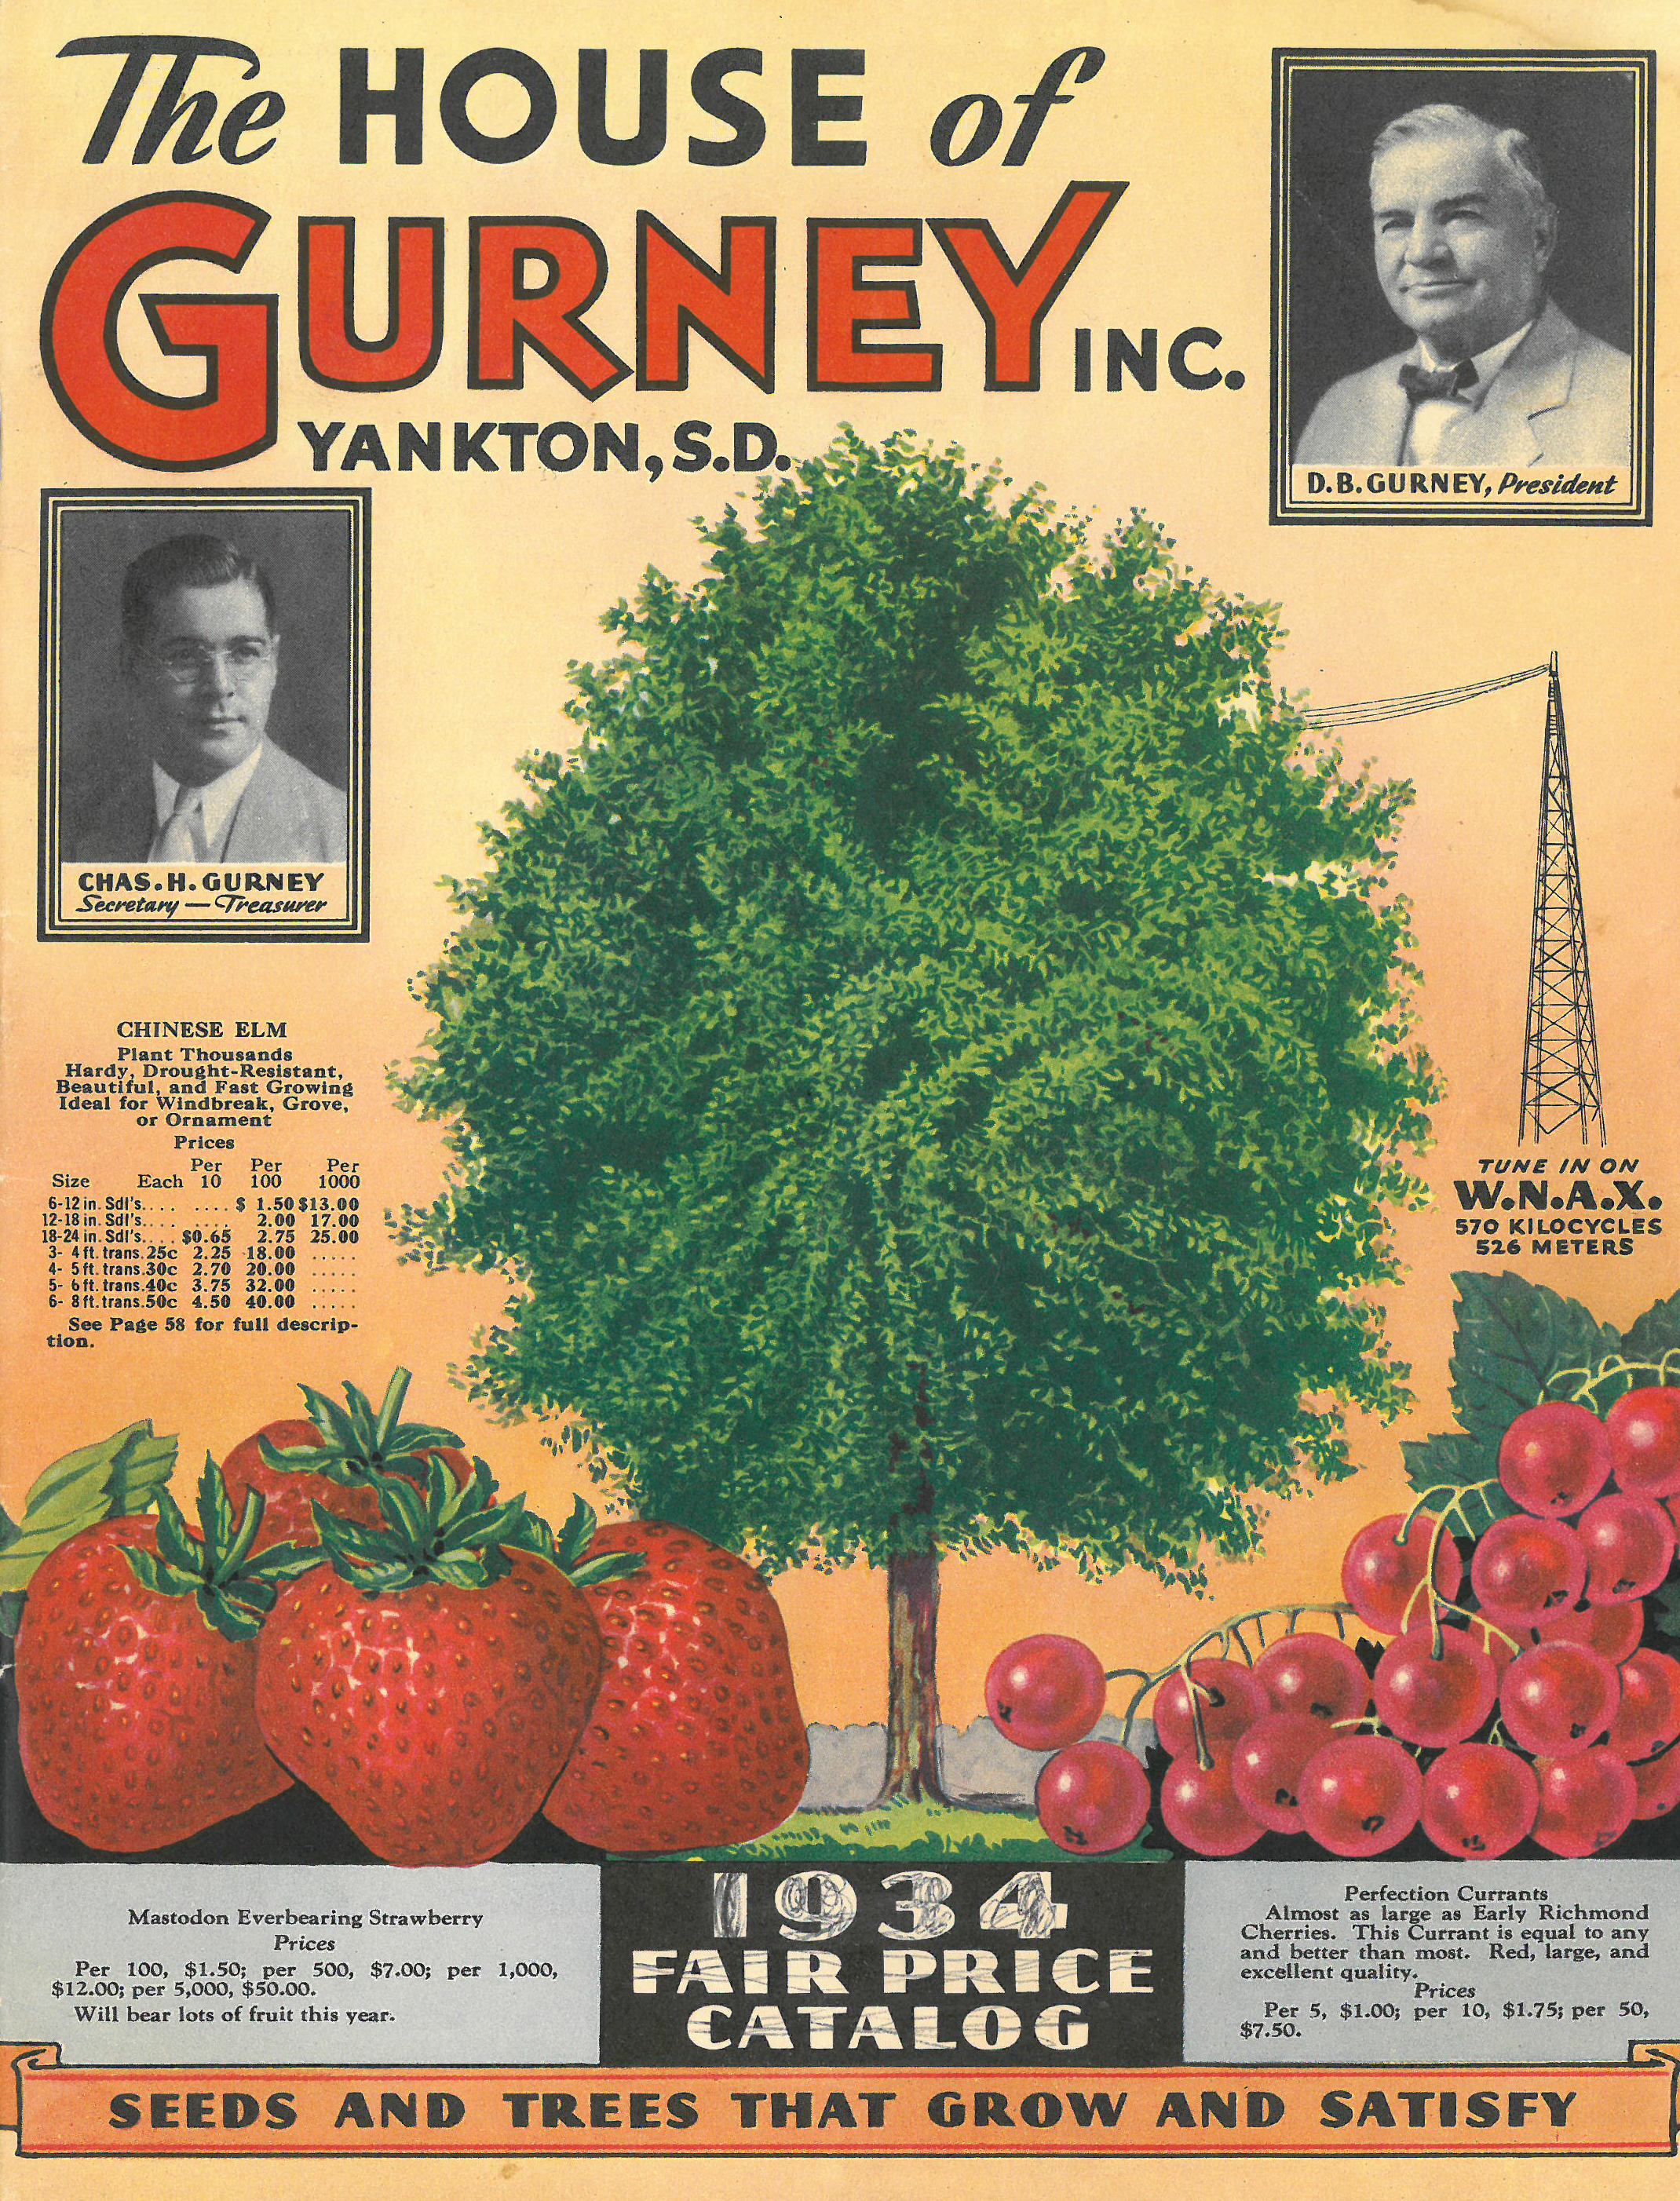 Distinctive This Catalog Is Included Among Historic Seed Catalogs Now Available Ncsu Libraries Gurney S Seed Nursery Company History Gurney S Seed Nursery Co Catalog houzz-03 Gurneys Seed And Nursery Company